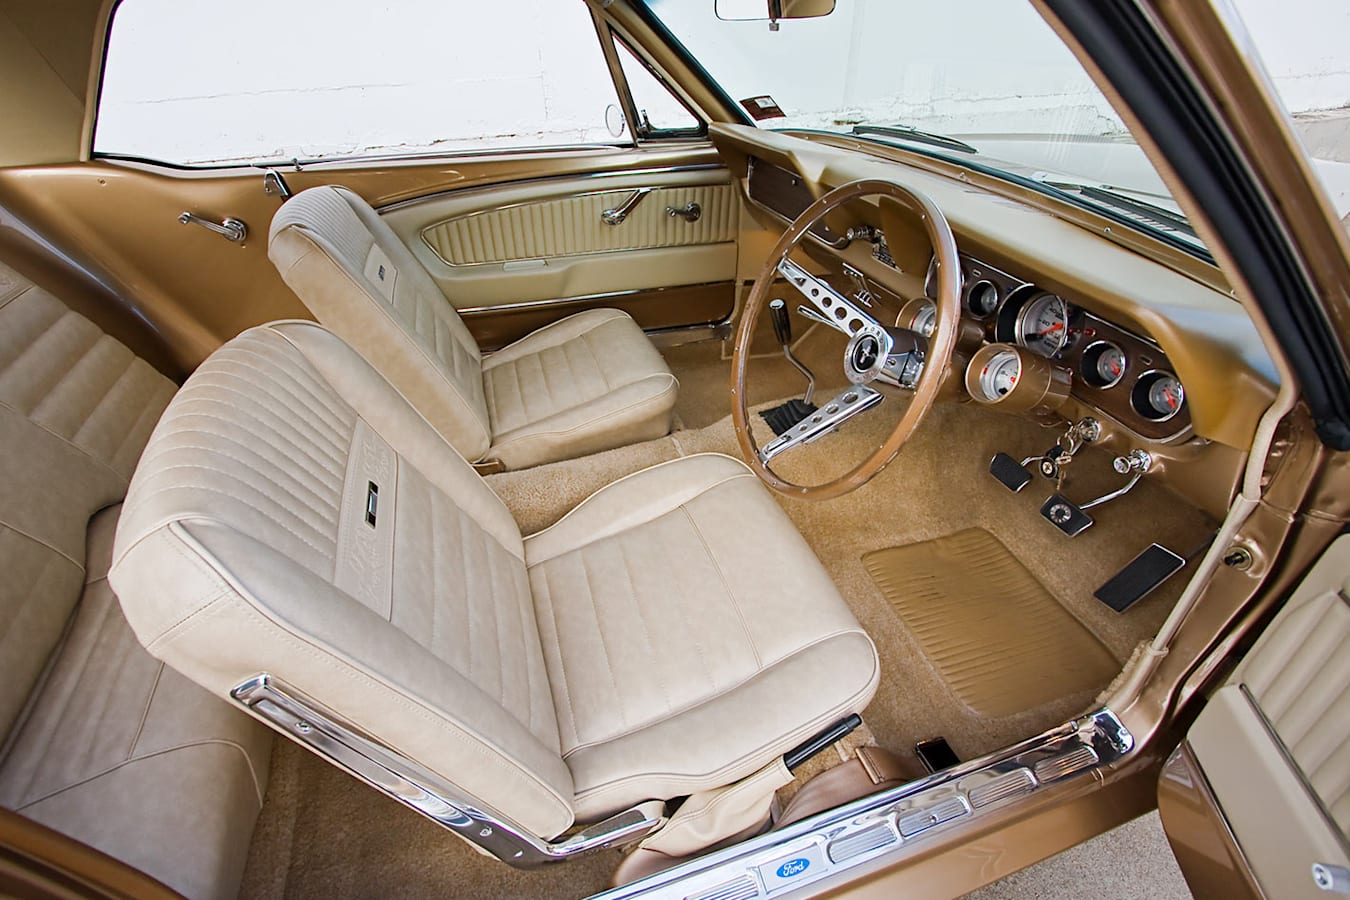 Ford Mustang interior front